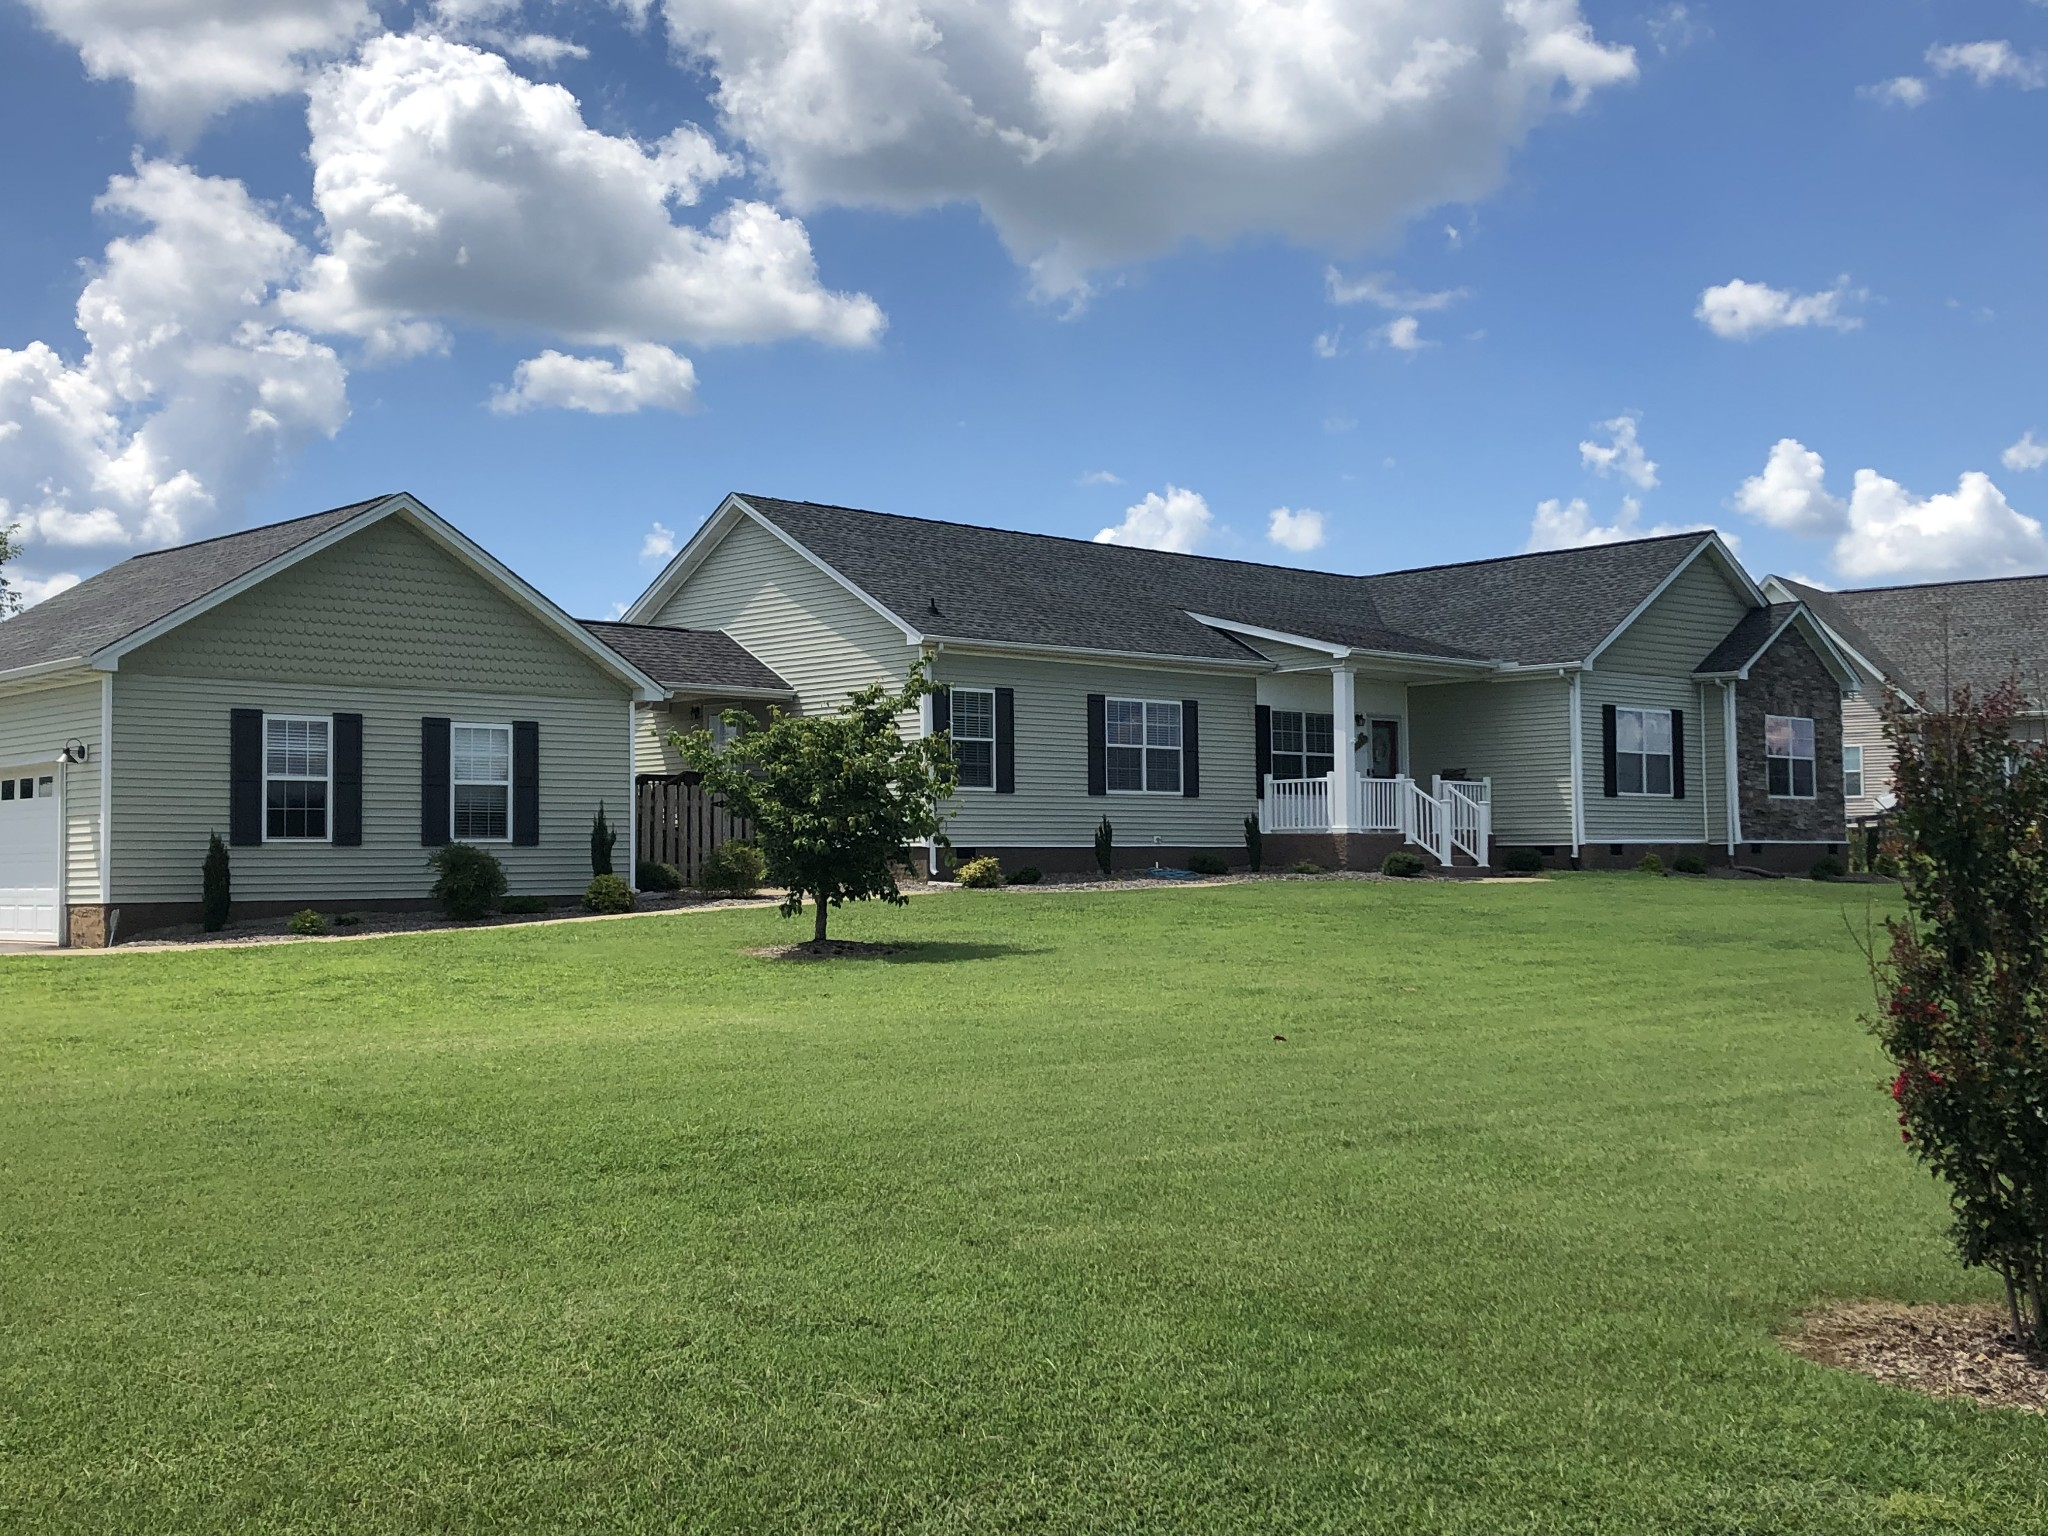 Beautiful home on 1 Acre,  MANY Upgrades, 9' Ceilings, Crown Molding, One level, 3 bdrms 2.5 baths, side entry garage, privacy fence, breezeway, covered front & back porches. Spacious Kitchen w/Island, X-tra large Master suite w/walk-in closets. Private office/art room. New paint, fixtures, flooring 2017, Country living, 5 miles to Kroeger, I-65, Saturn Parkway. Close to shopping & GM Plant. Room for gardening & park the RV. NO HOA!  Chicken coop stays, play gym does not remain.